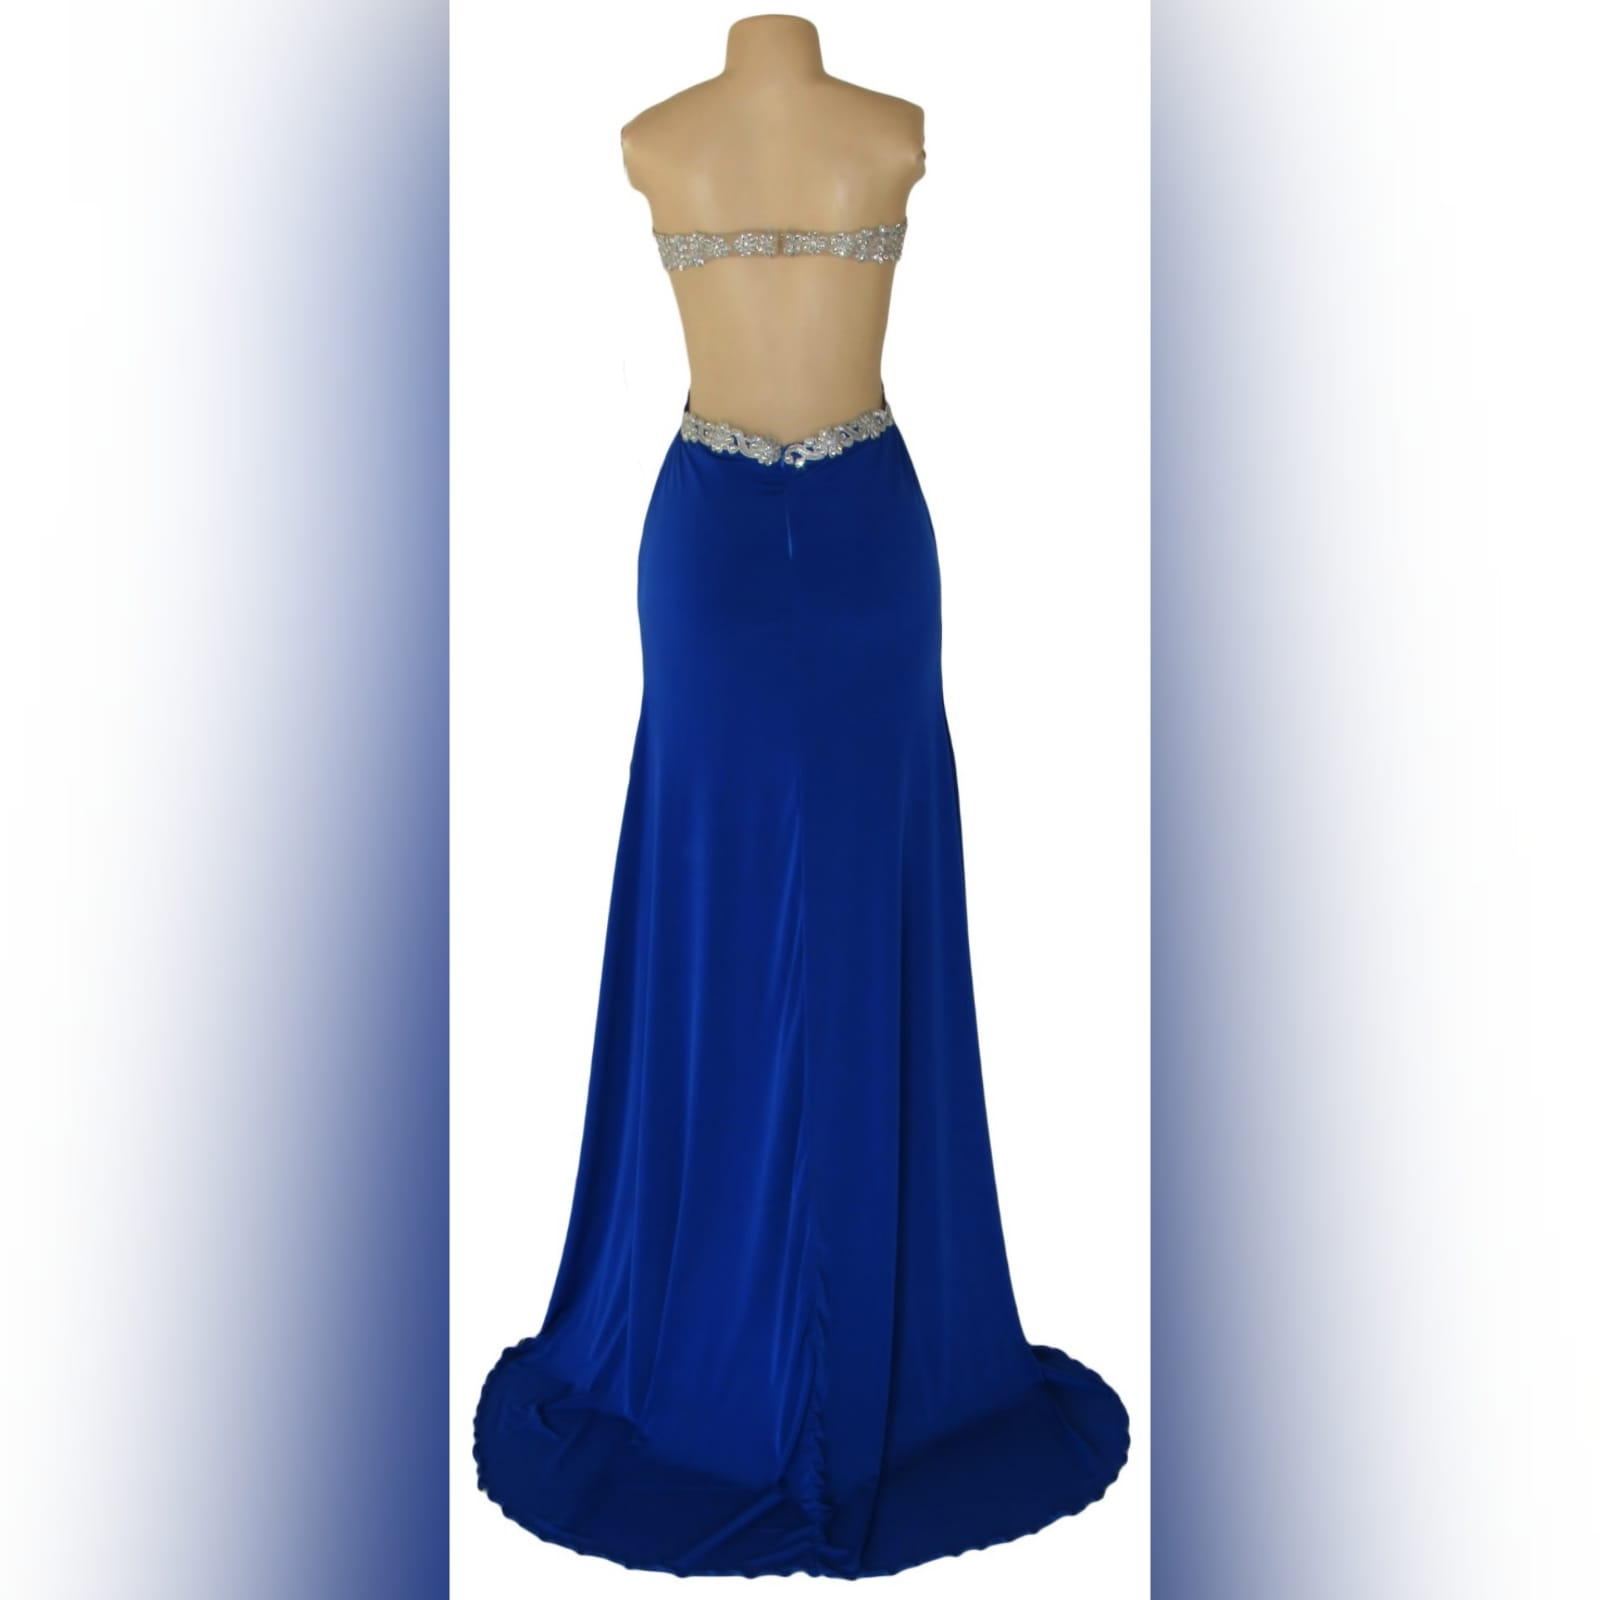 Royal blue and silver sexy ceremony dress 5 royal blue and silver sexy ceremony dress. Designed and made for a prom dance. With a lace and beaded boobtube bodice, a naked back and flowy bottom with a slit and a train.